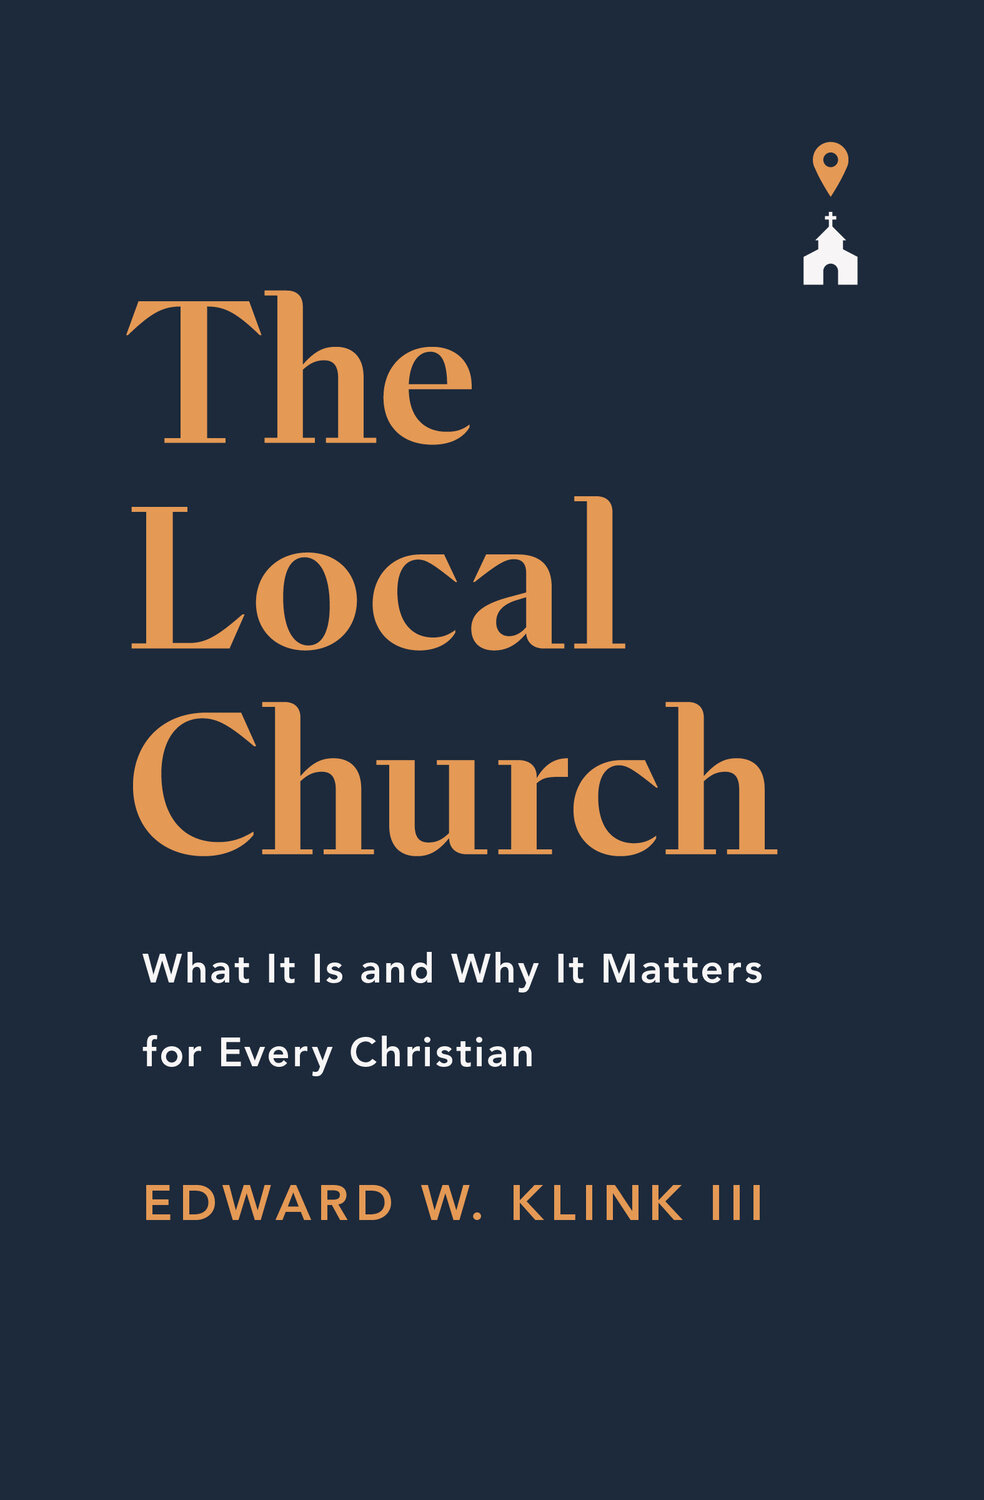 The Local Church: What It Is and Why It Matters for Every Christian